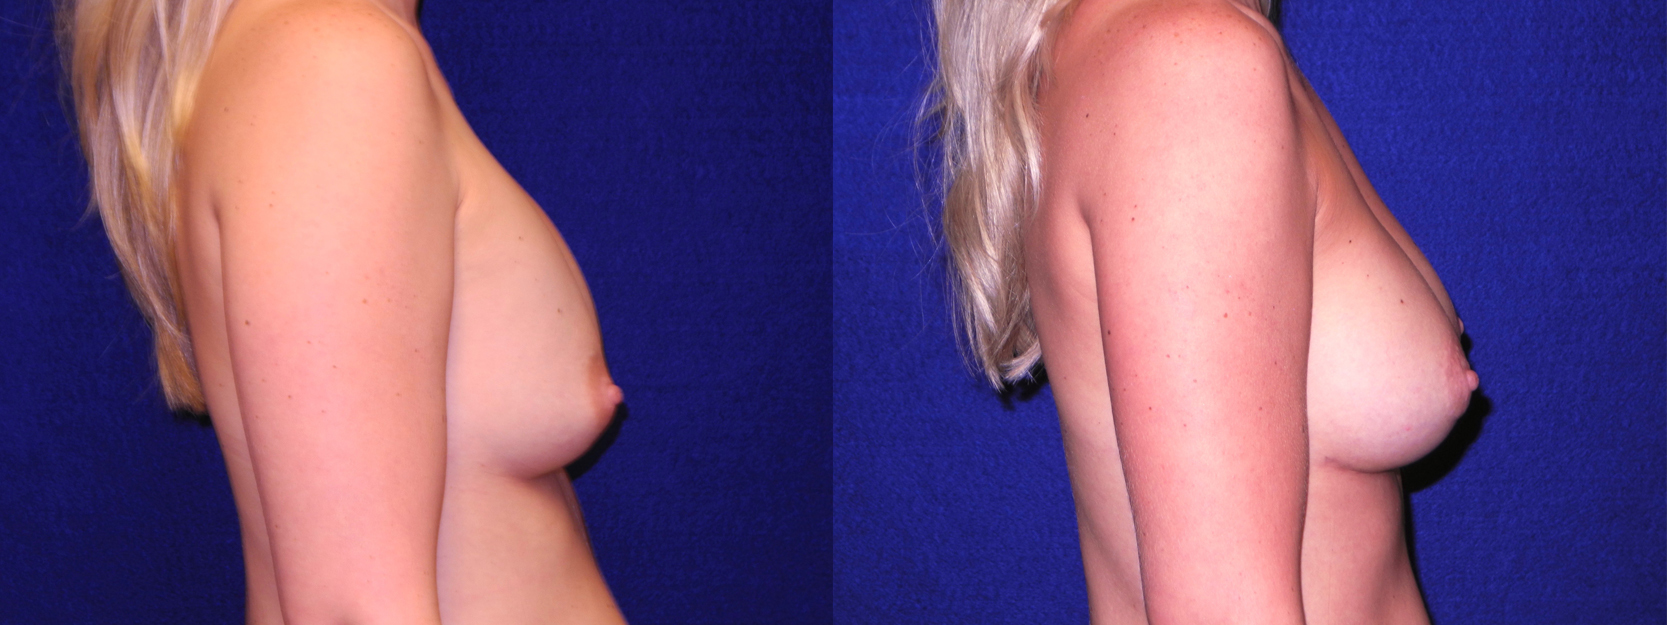 Right Profile View - Implant Revision and Breast Lift